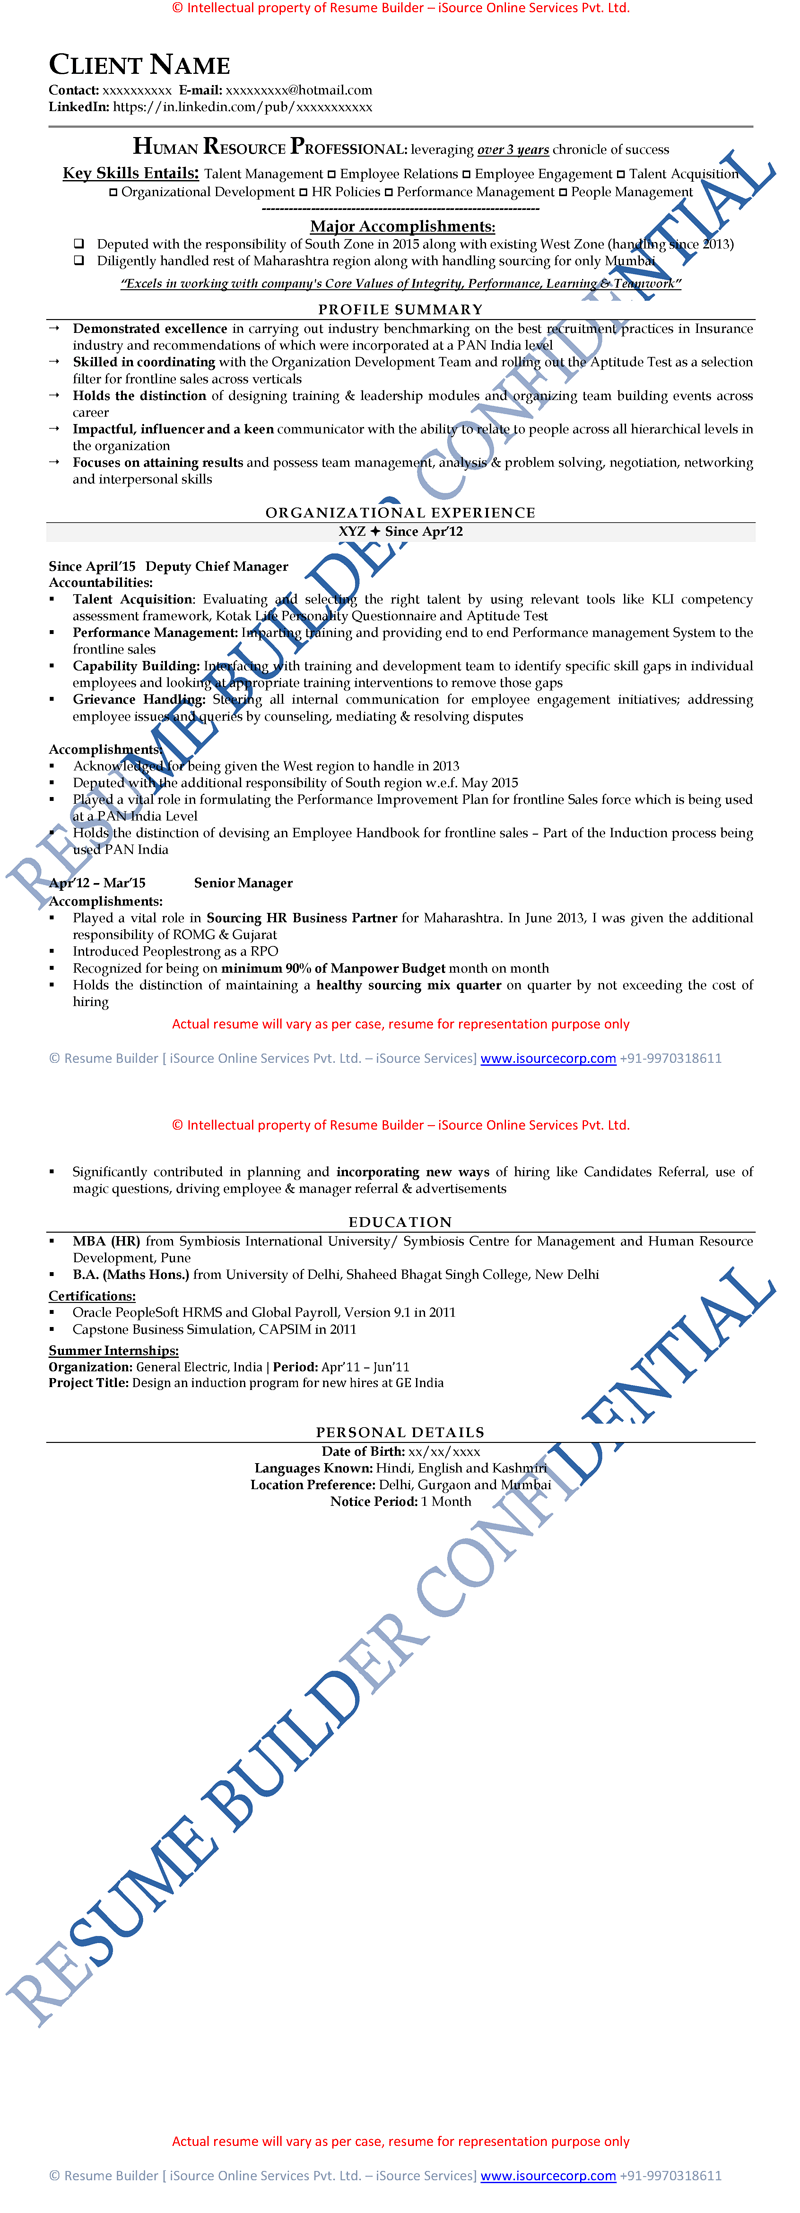 executive resume  linkedin  u0026 cover letter writing  visual cv  ceo cxo leadership resume writing